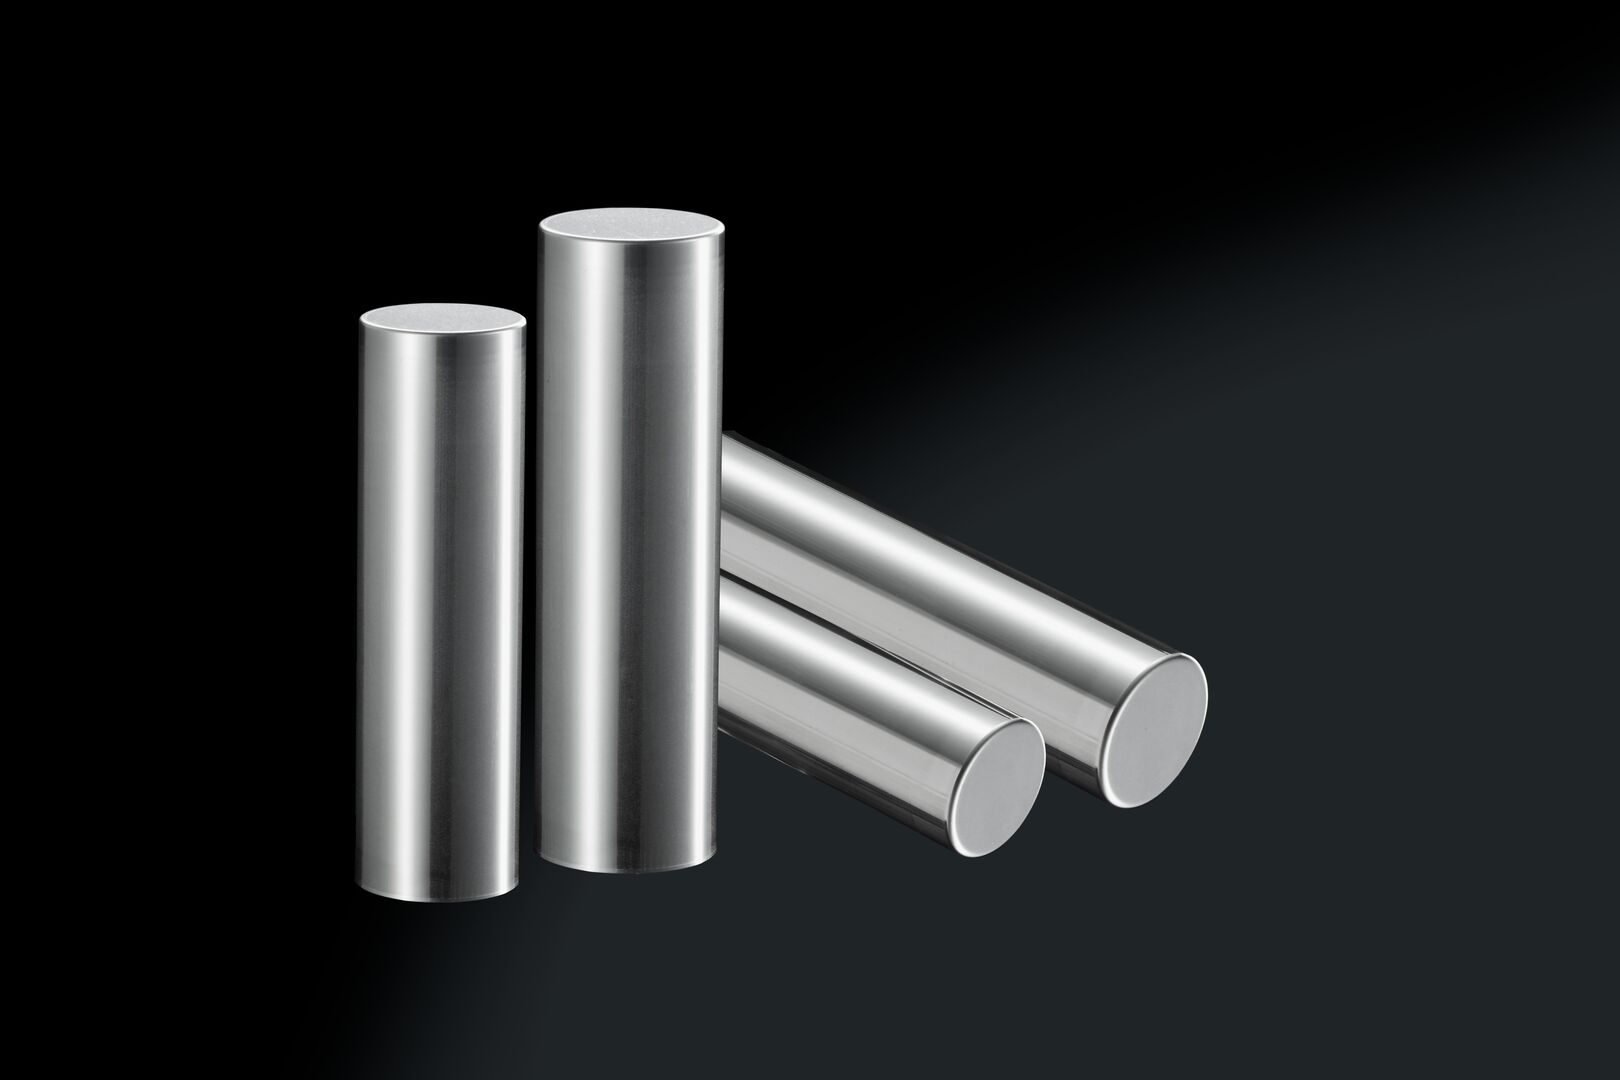 Cylindrical Li-ion battery cans